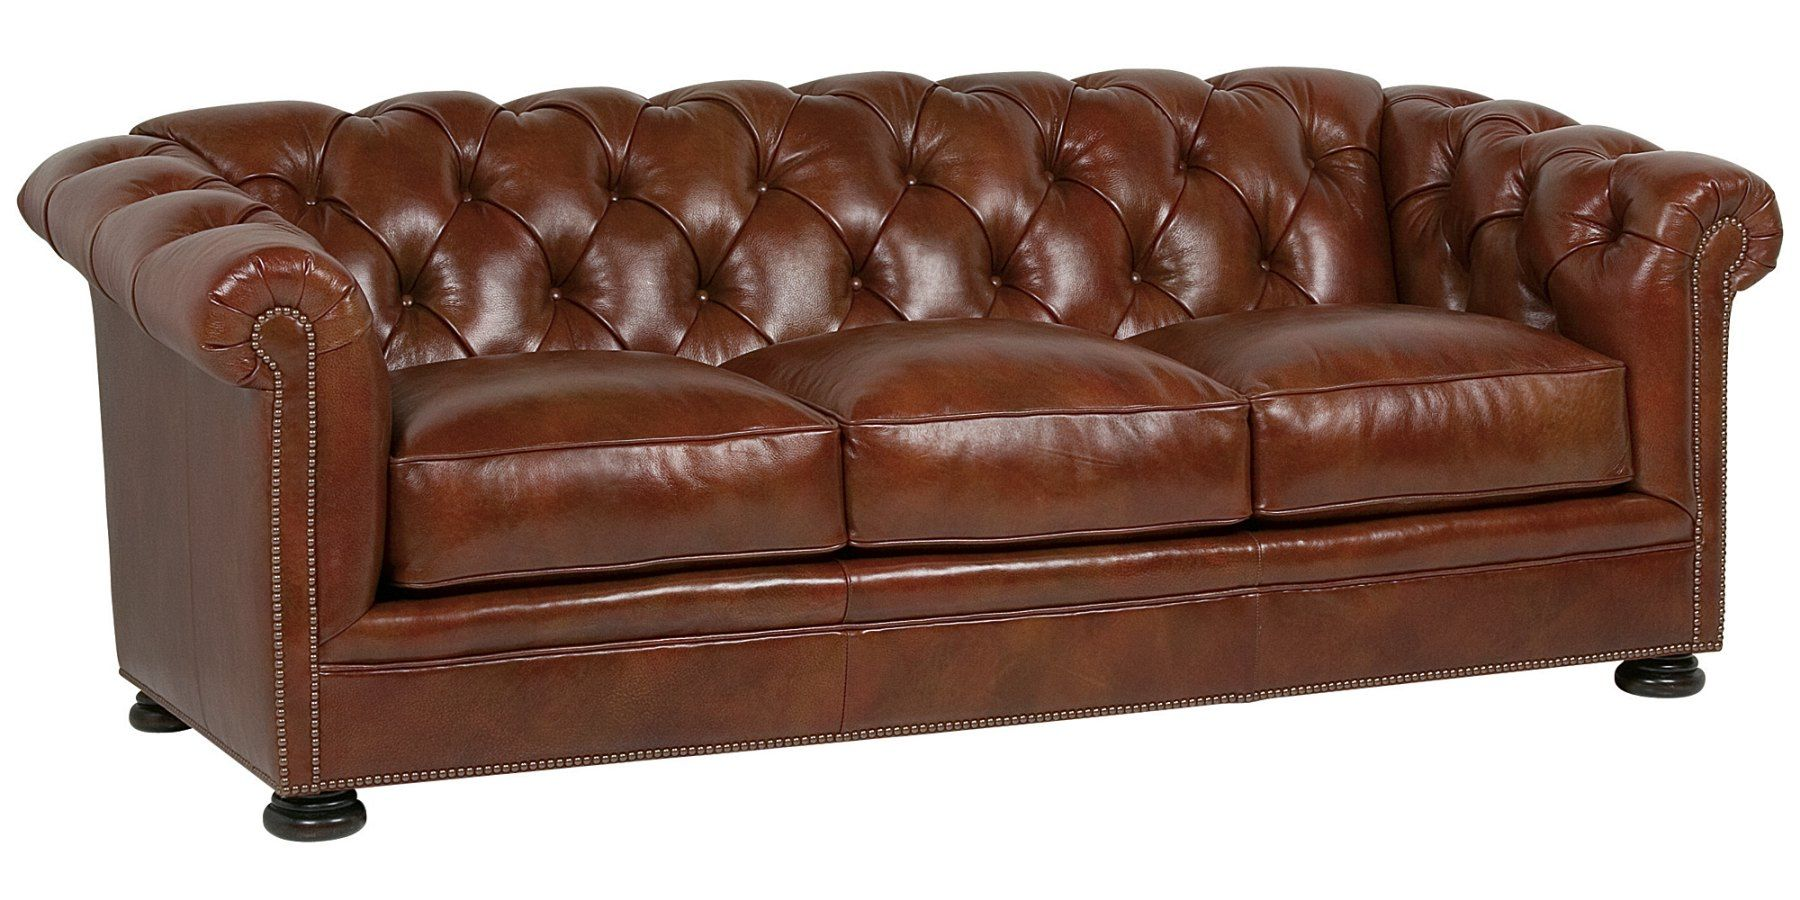 Chesterfield Tufted Leather Sofa With Antique Br Nailhead Trim